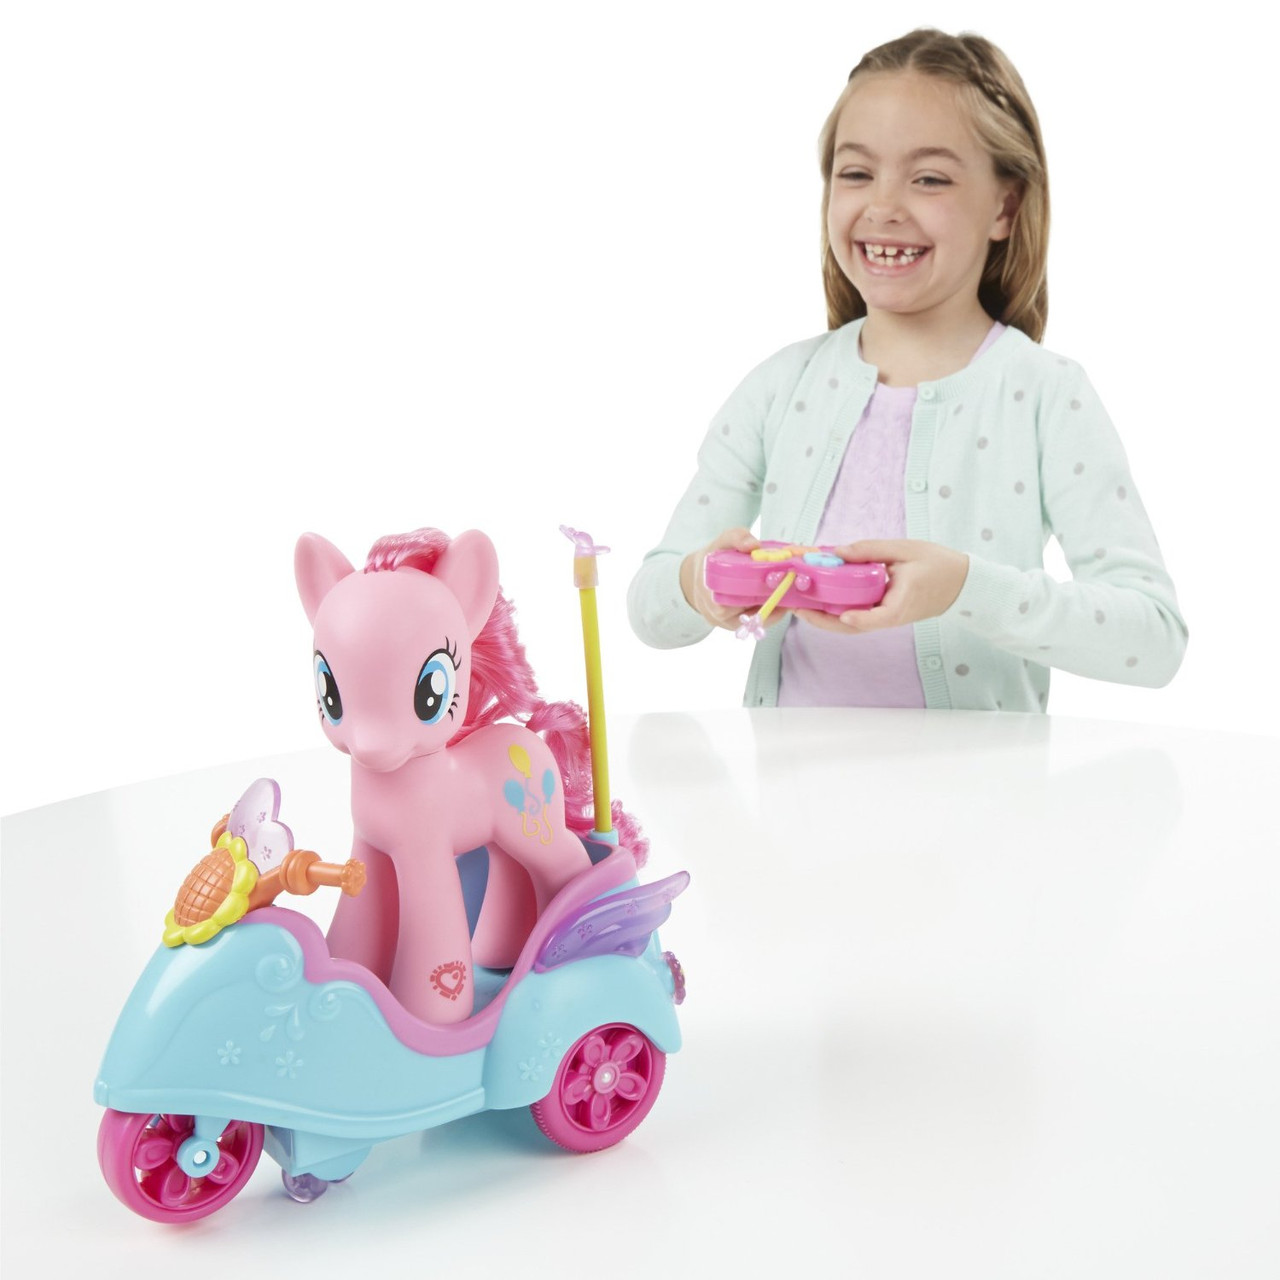 Пони Пинки пай на скутере на дистанционном управлении My Little Pony Pinkie Pie RC Scooter